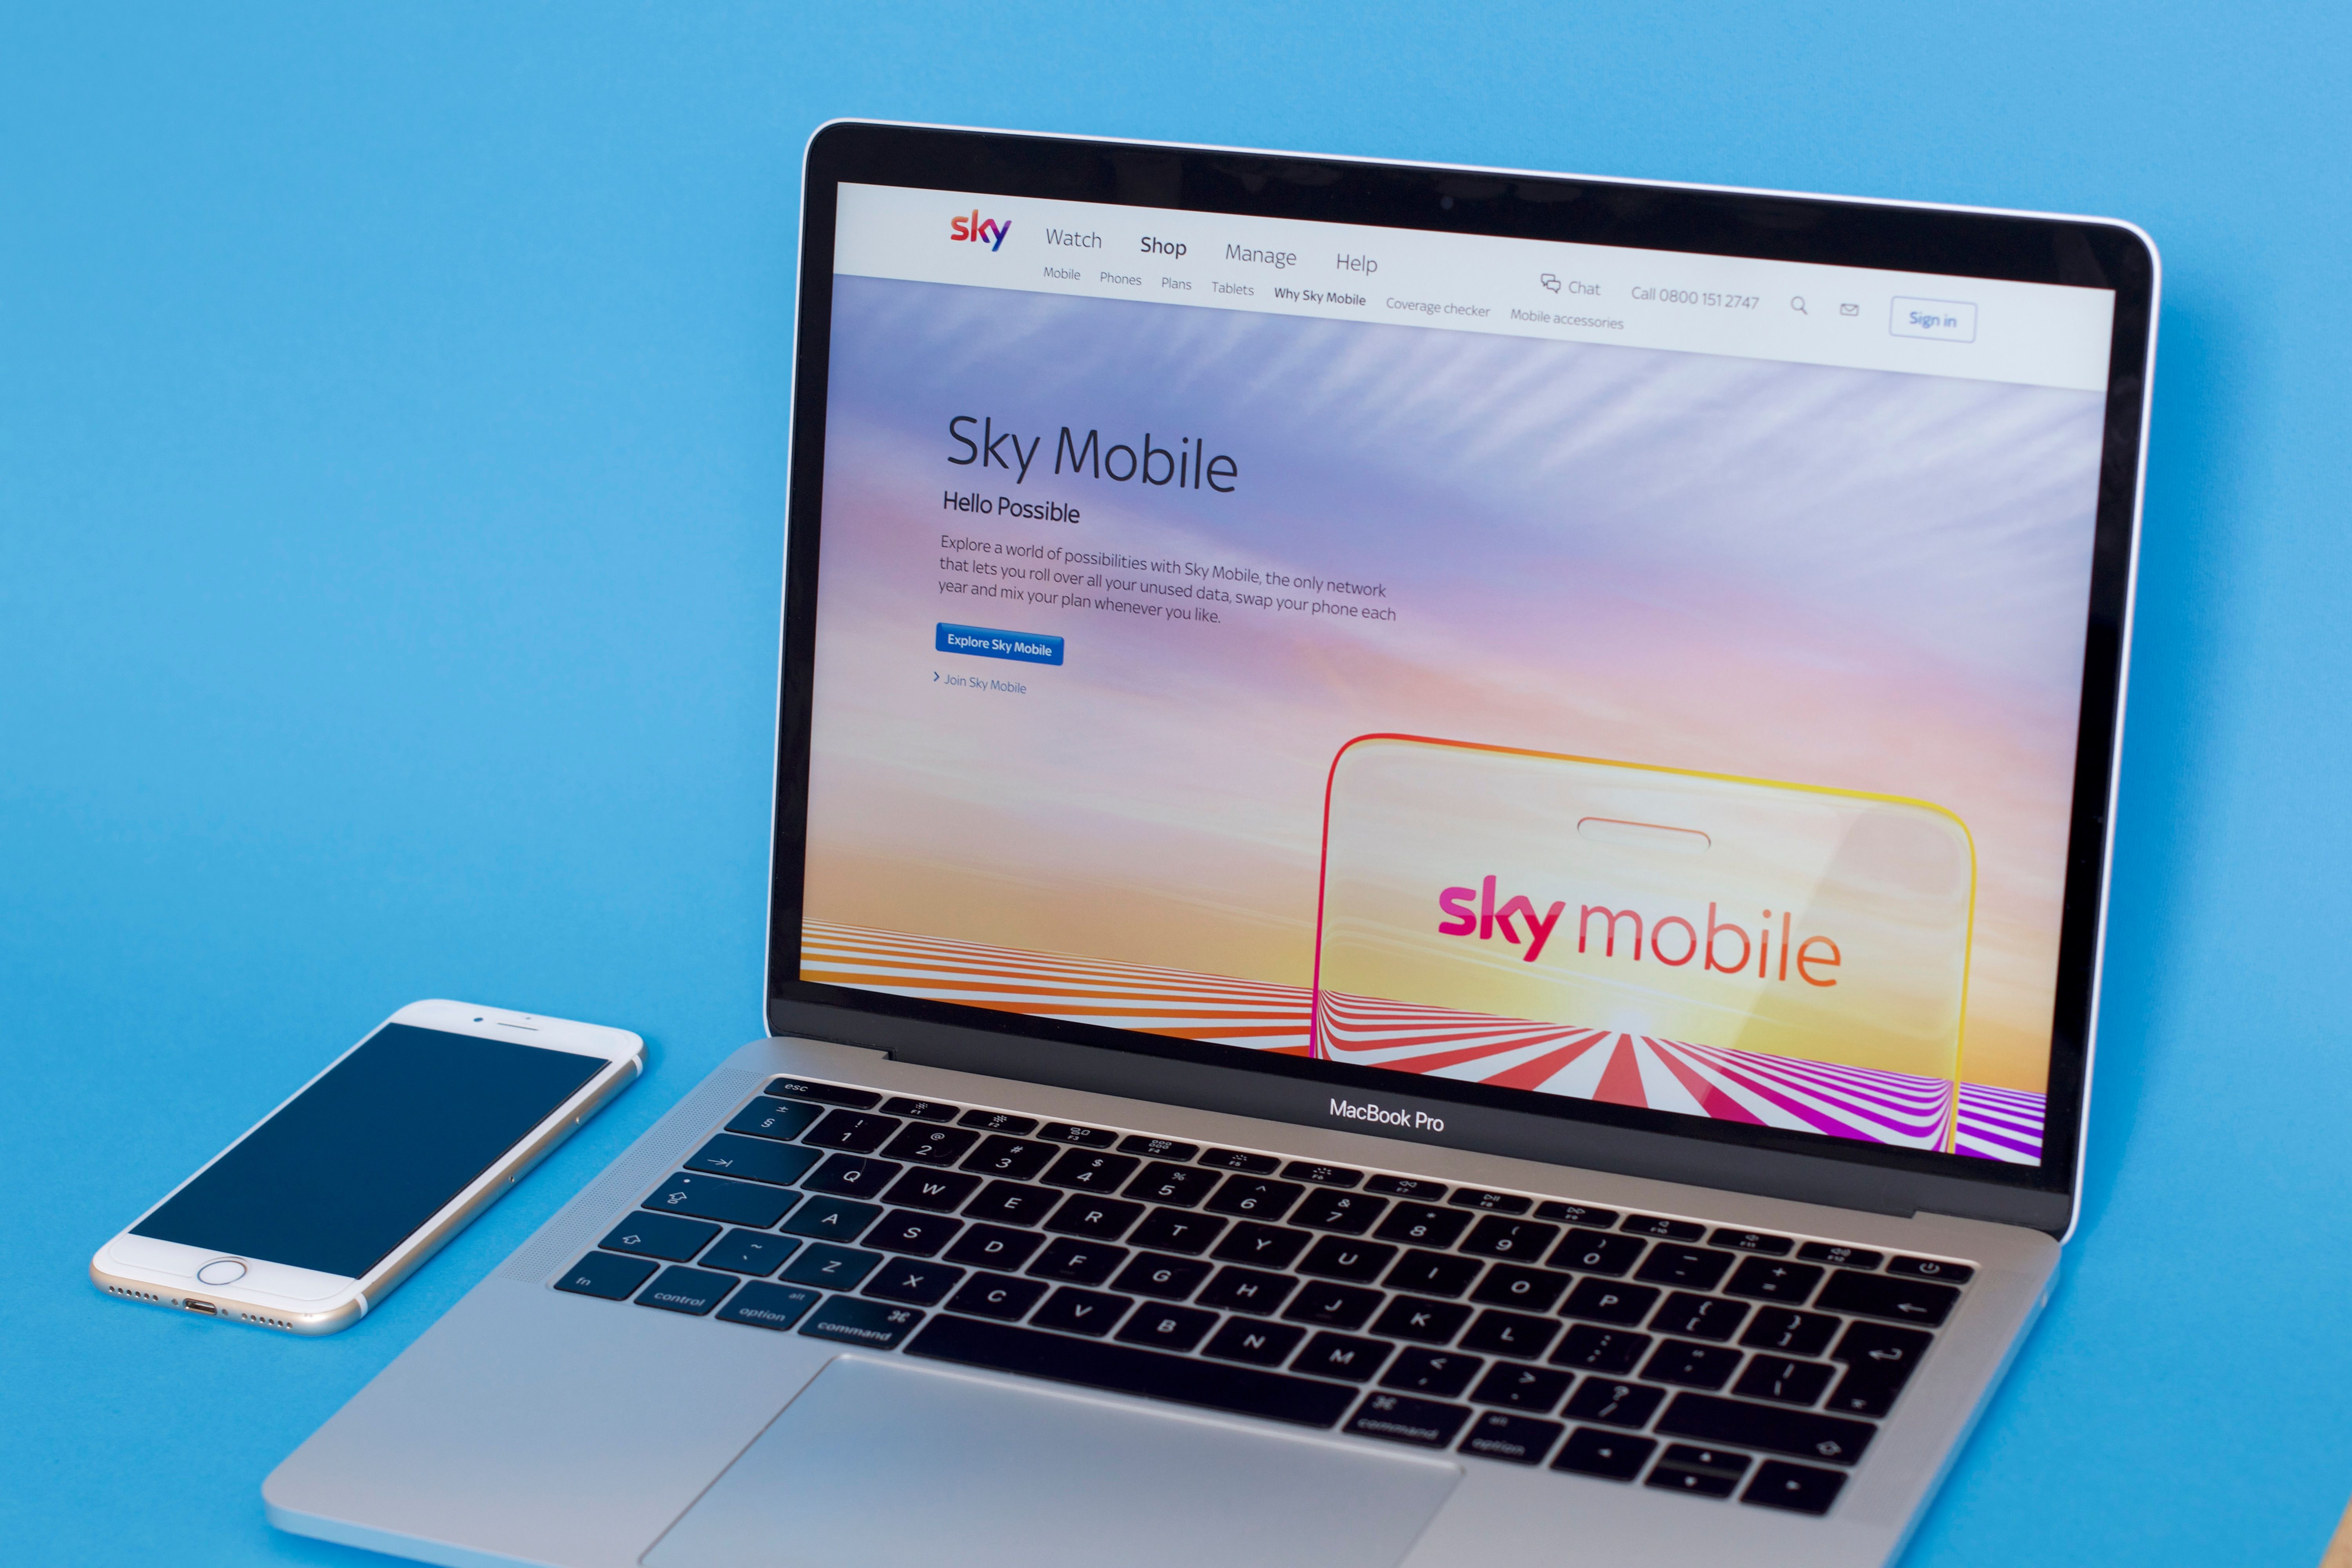 Sky Mobile introduces PiggyBank